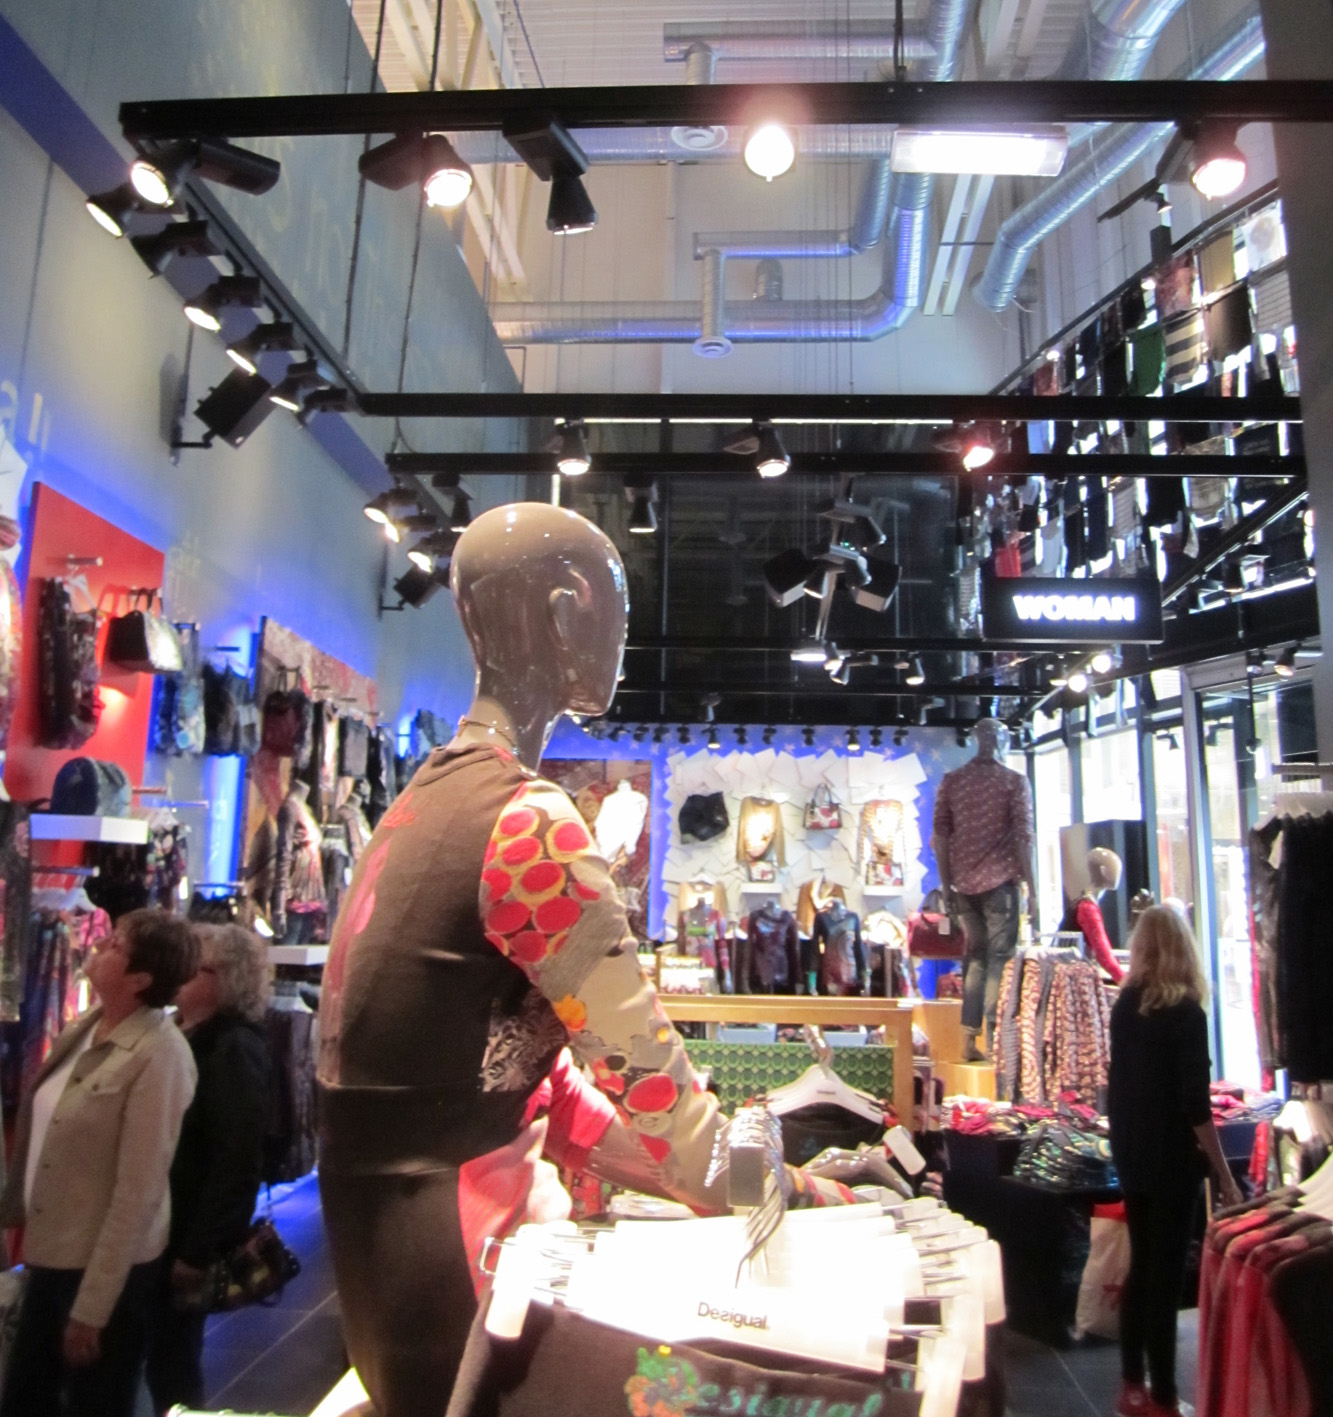 Using retail lighting with good colour rendering properties is especially important for clothing and fashion brands.